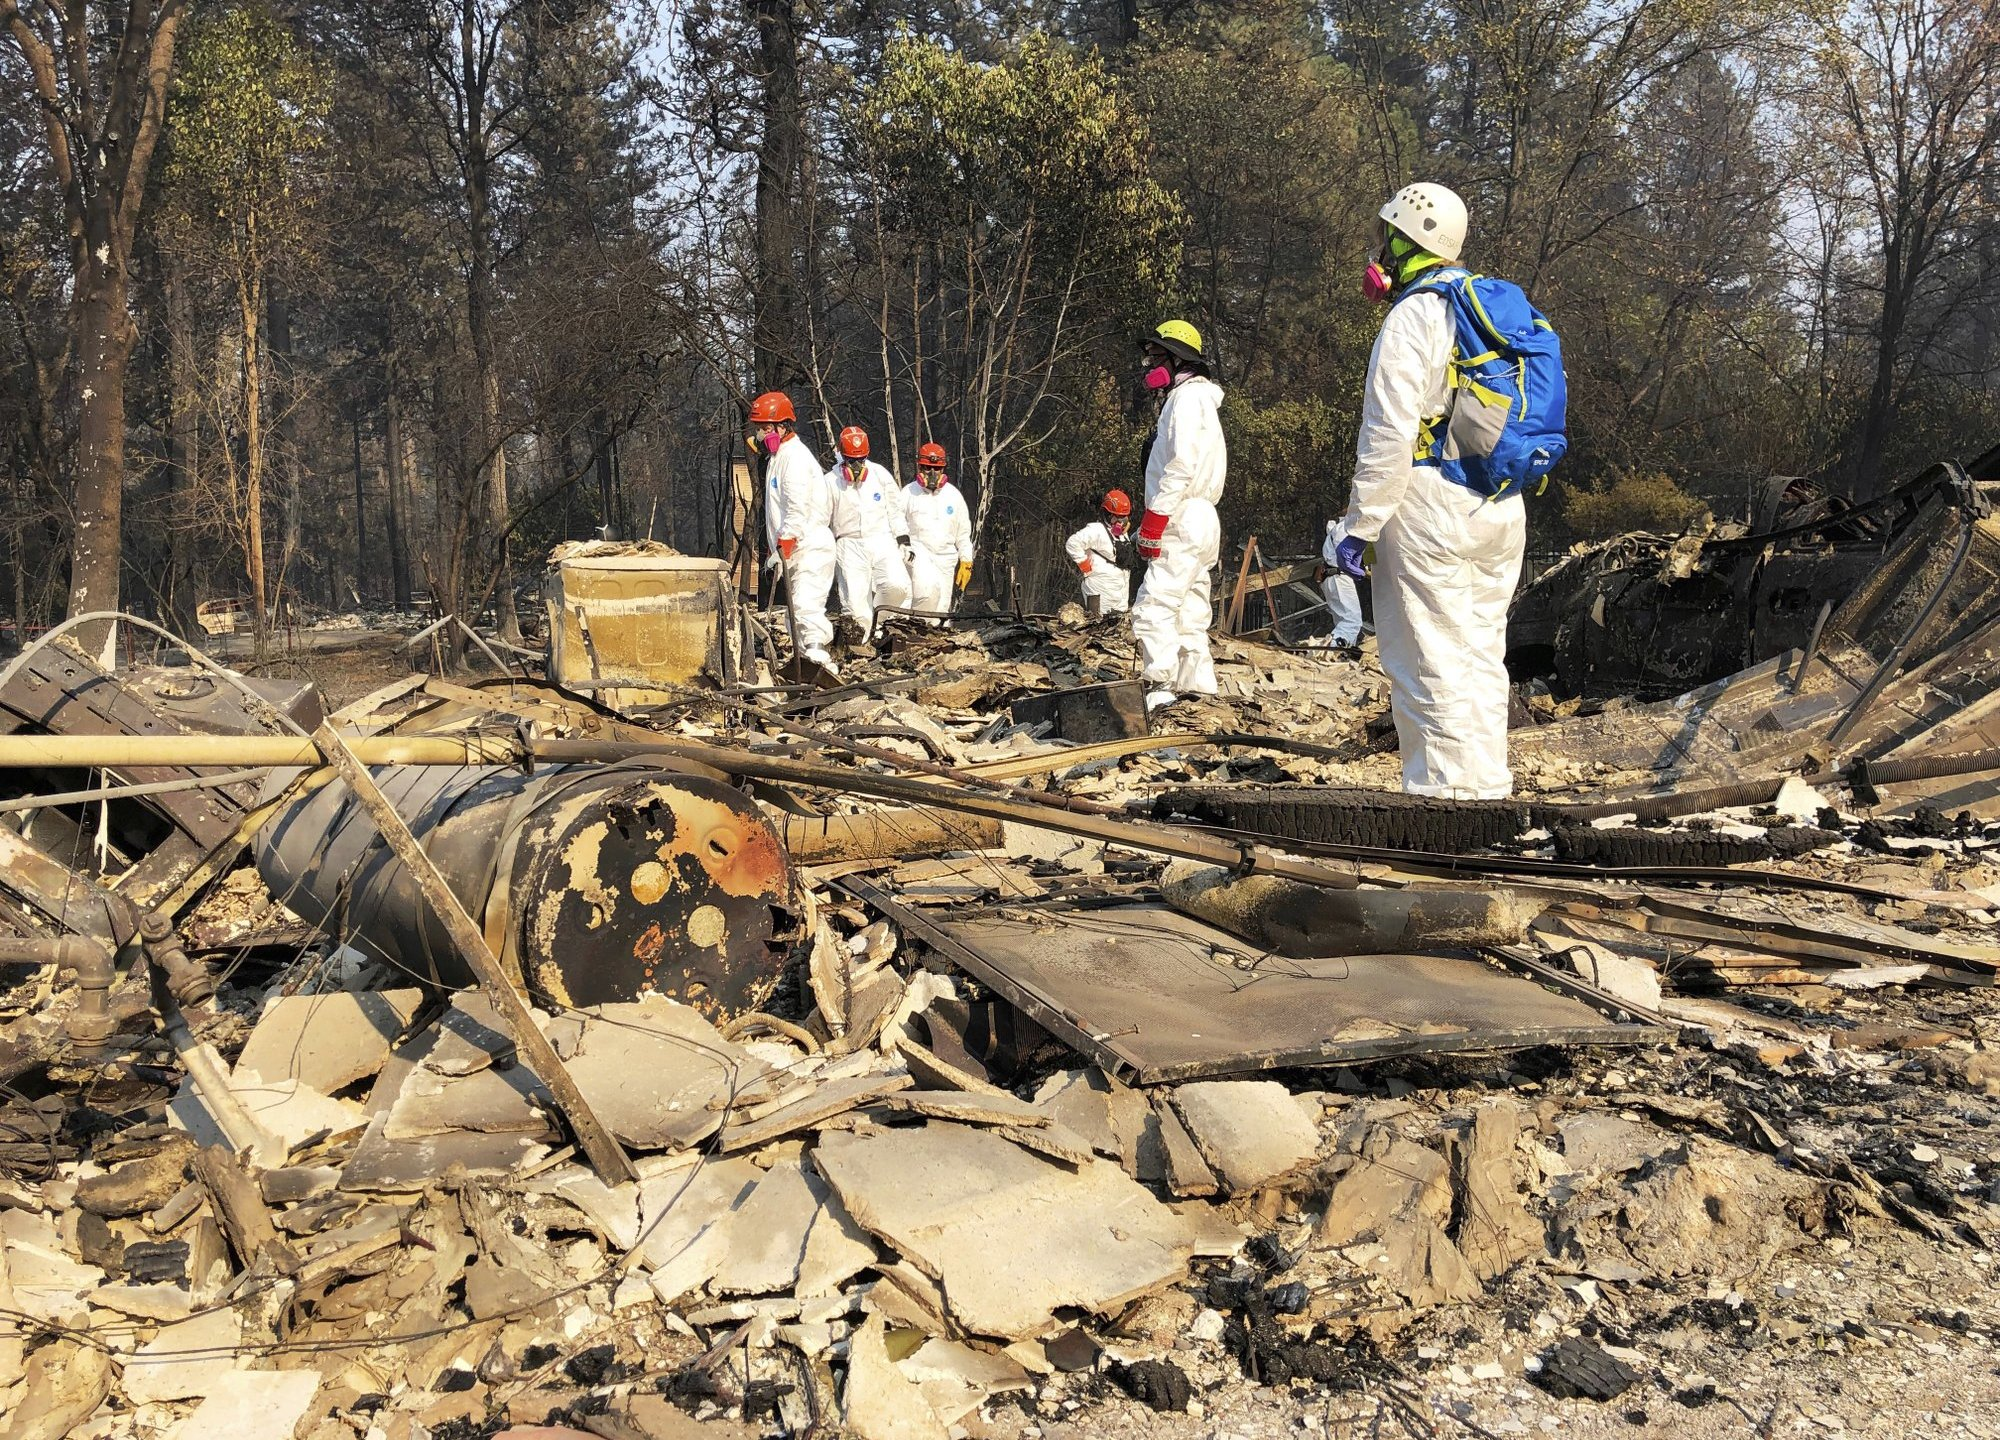 california wildfire search 1_1542622795304.jpeg.jpg